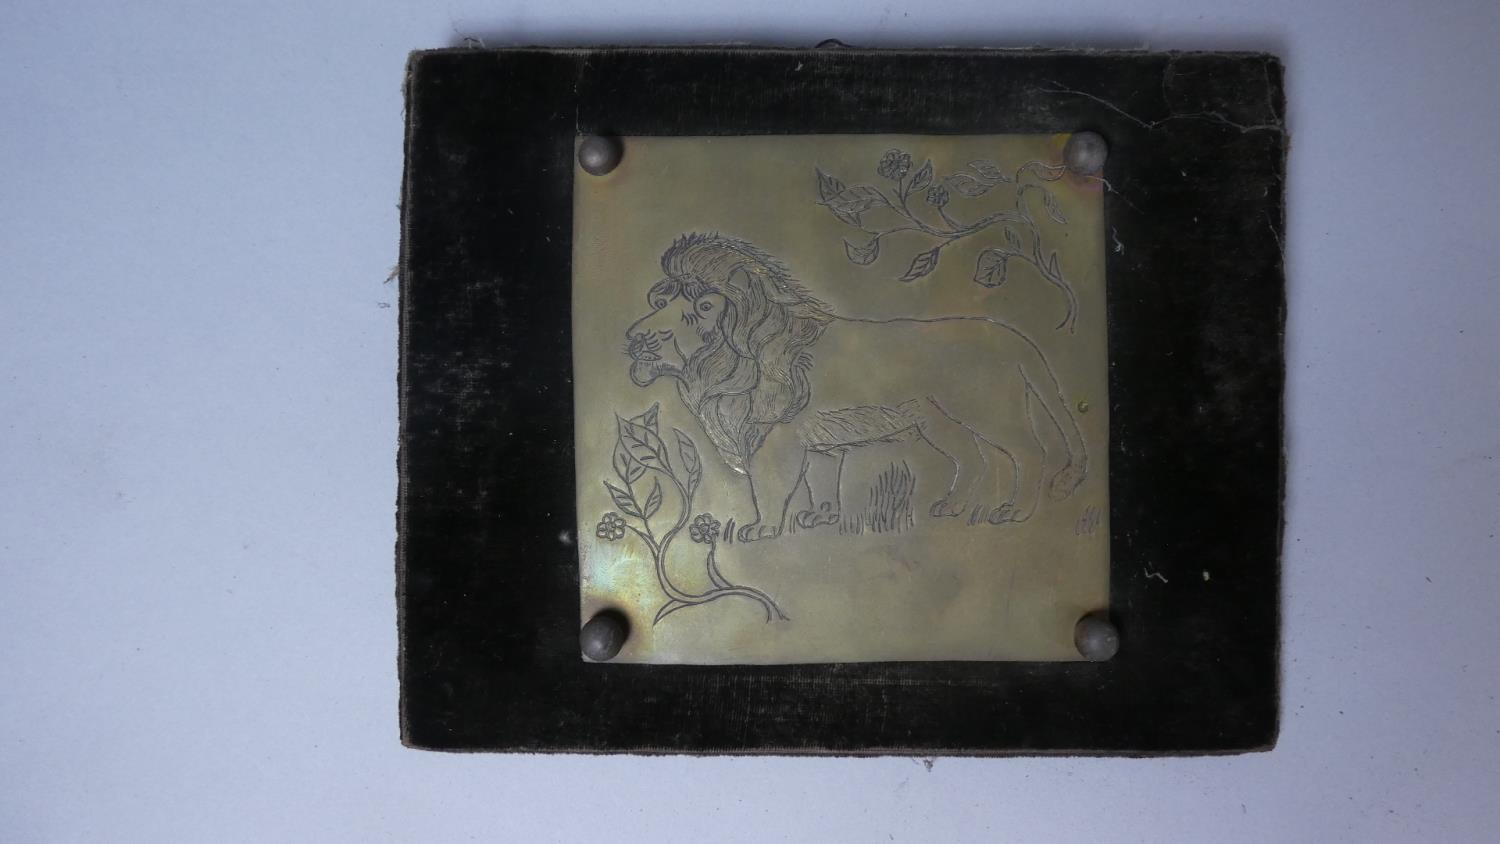 Lot 38 - A Pair of Framed 19th Century Engraved Brass Plates Depicting Lions, Each 13cm Square